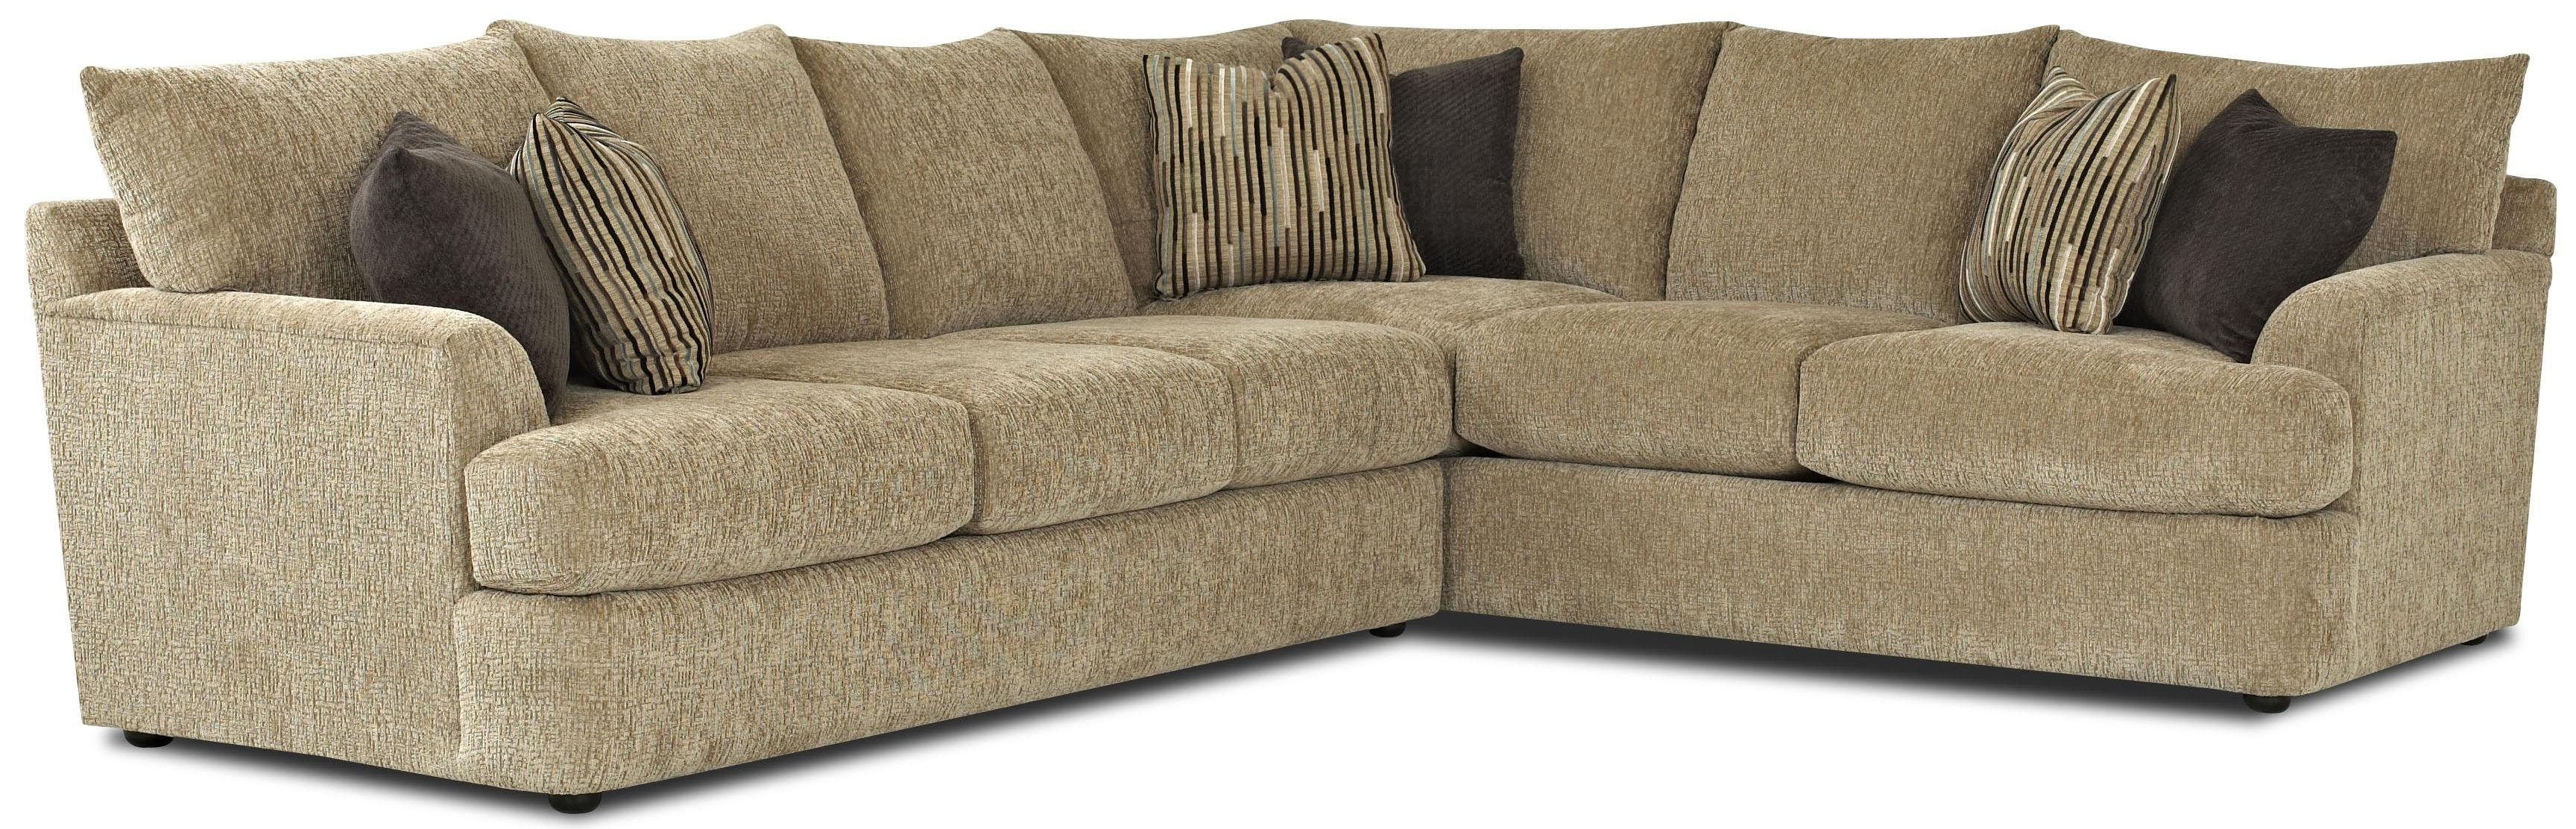 Contemporary L Shaped Sectional Sofaklaussner (View 2 of 15)